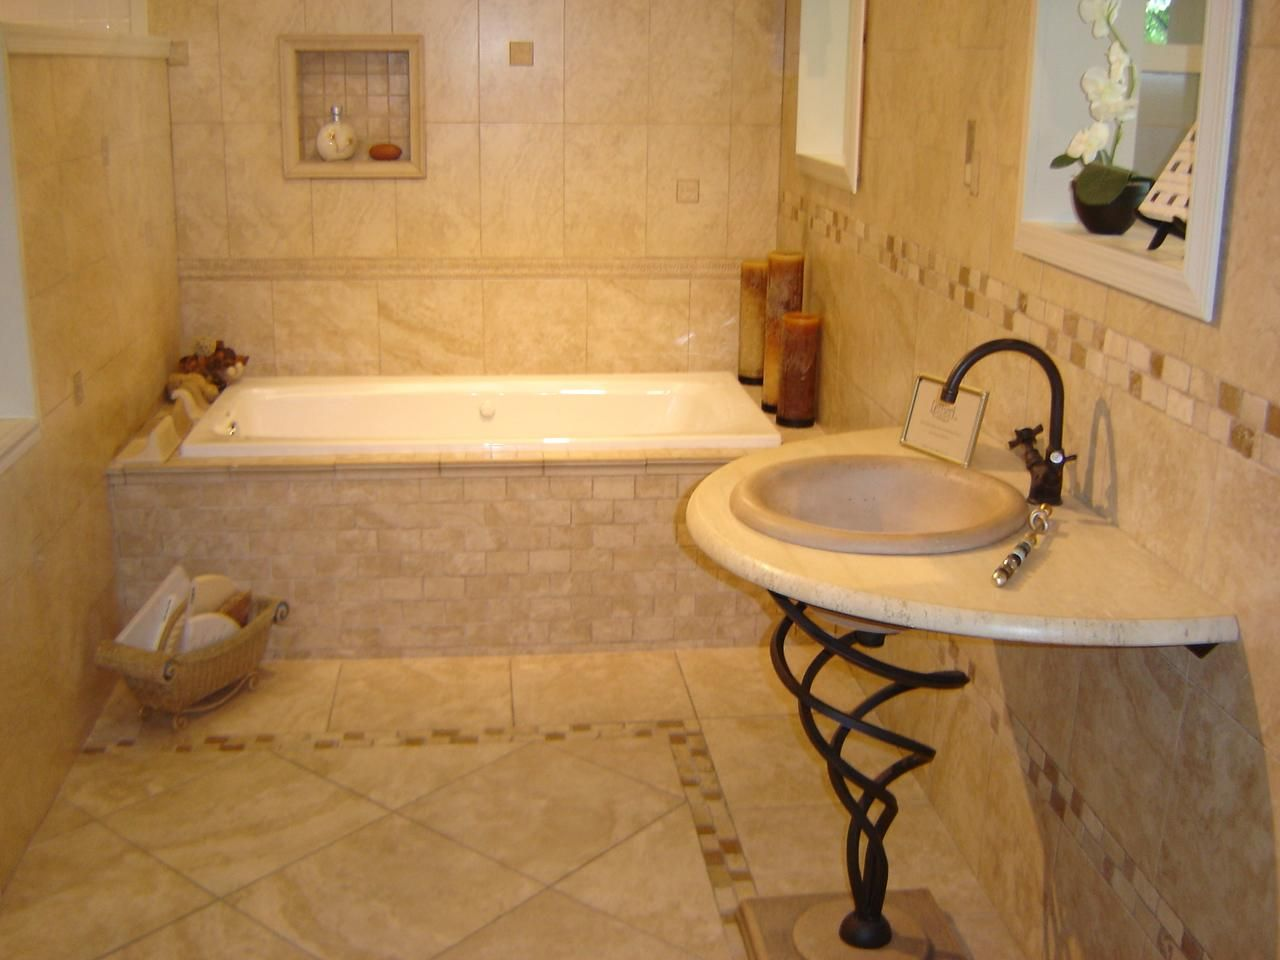 Pictures Of Tiled Bathrooms Bathroom Tile Picture Is A Part